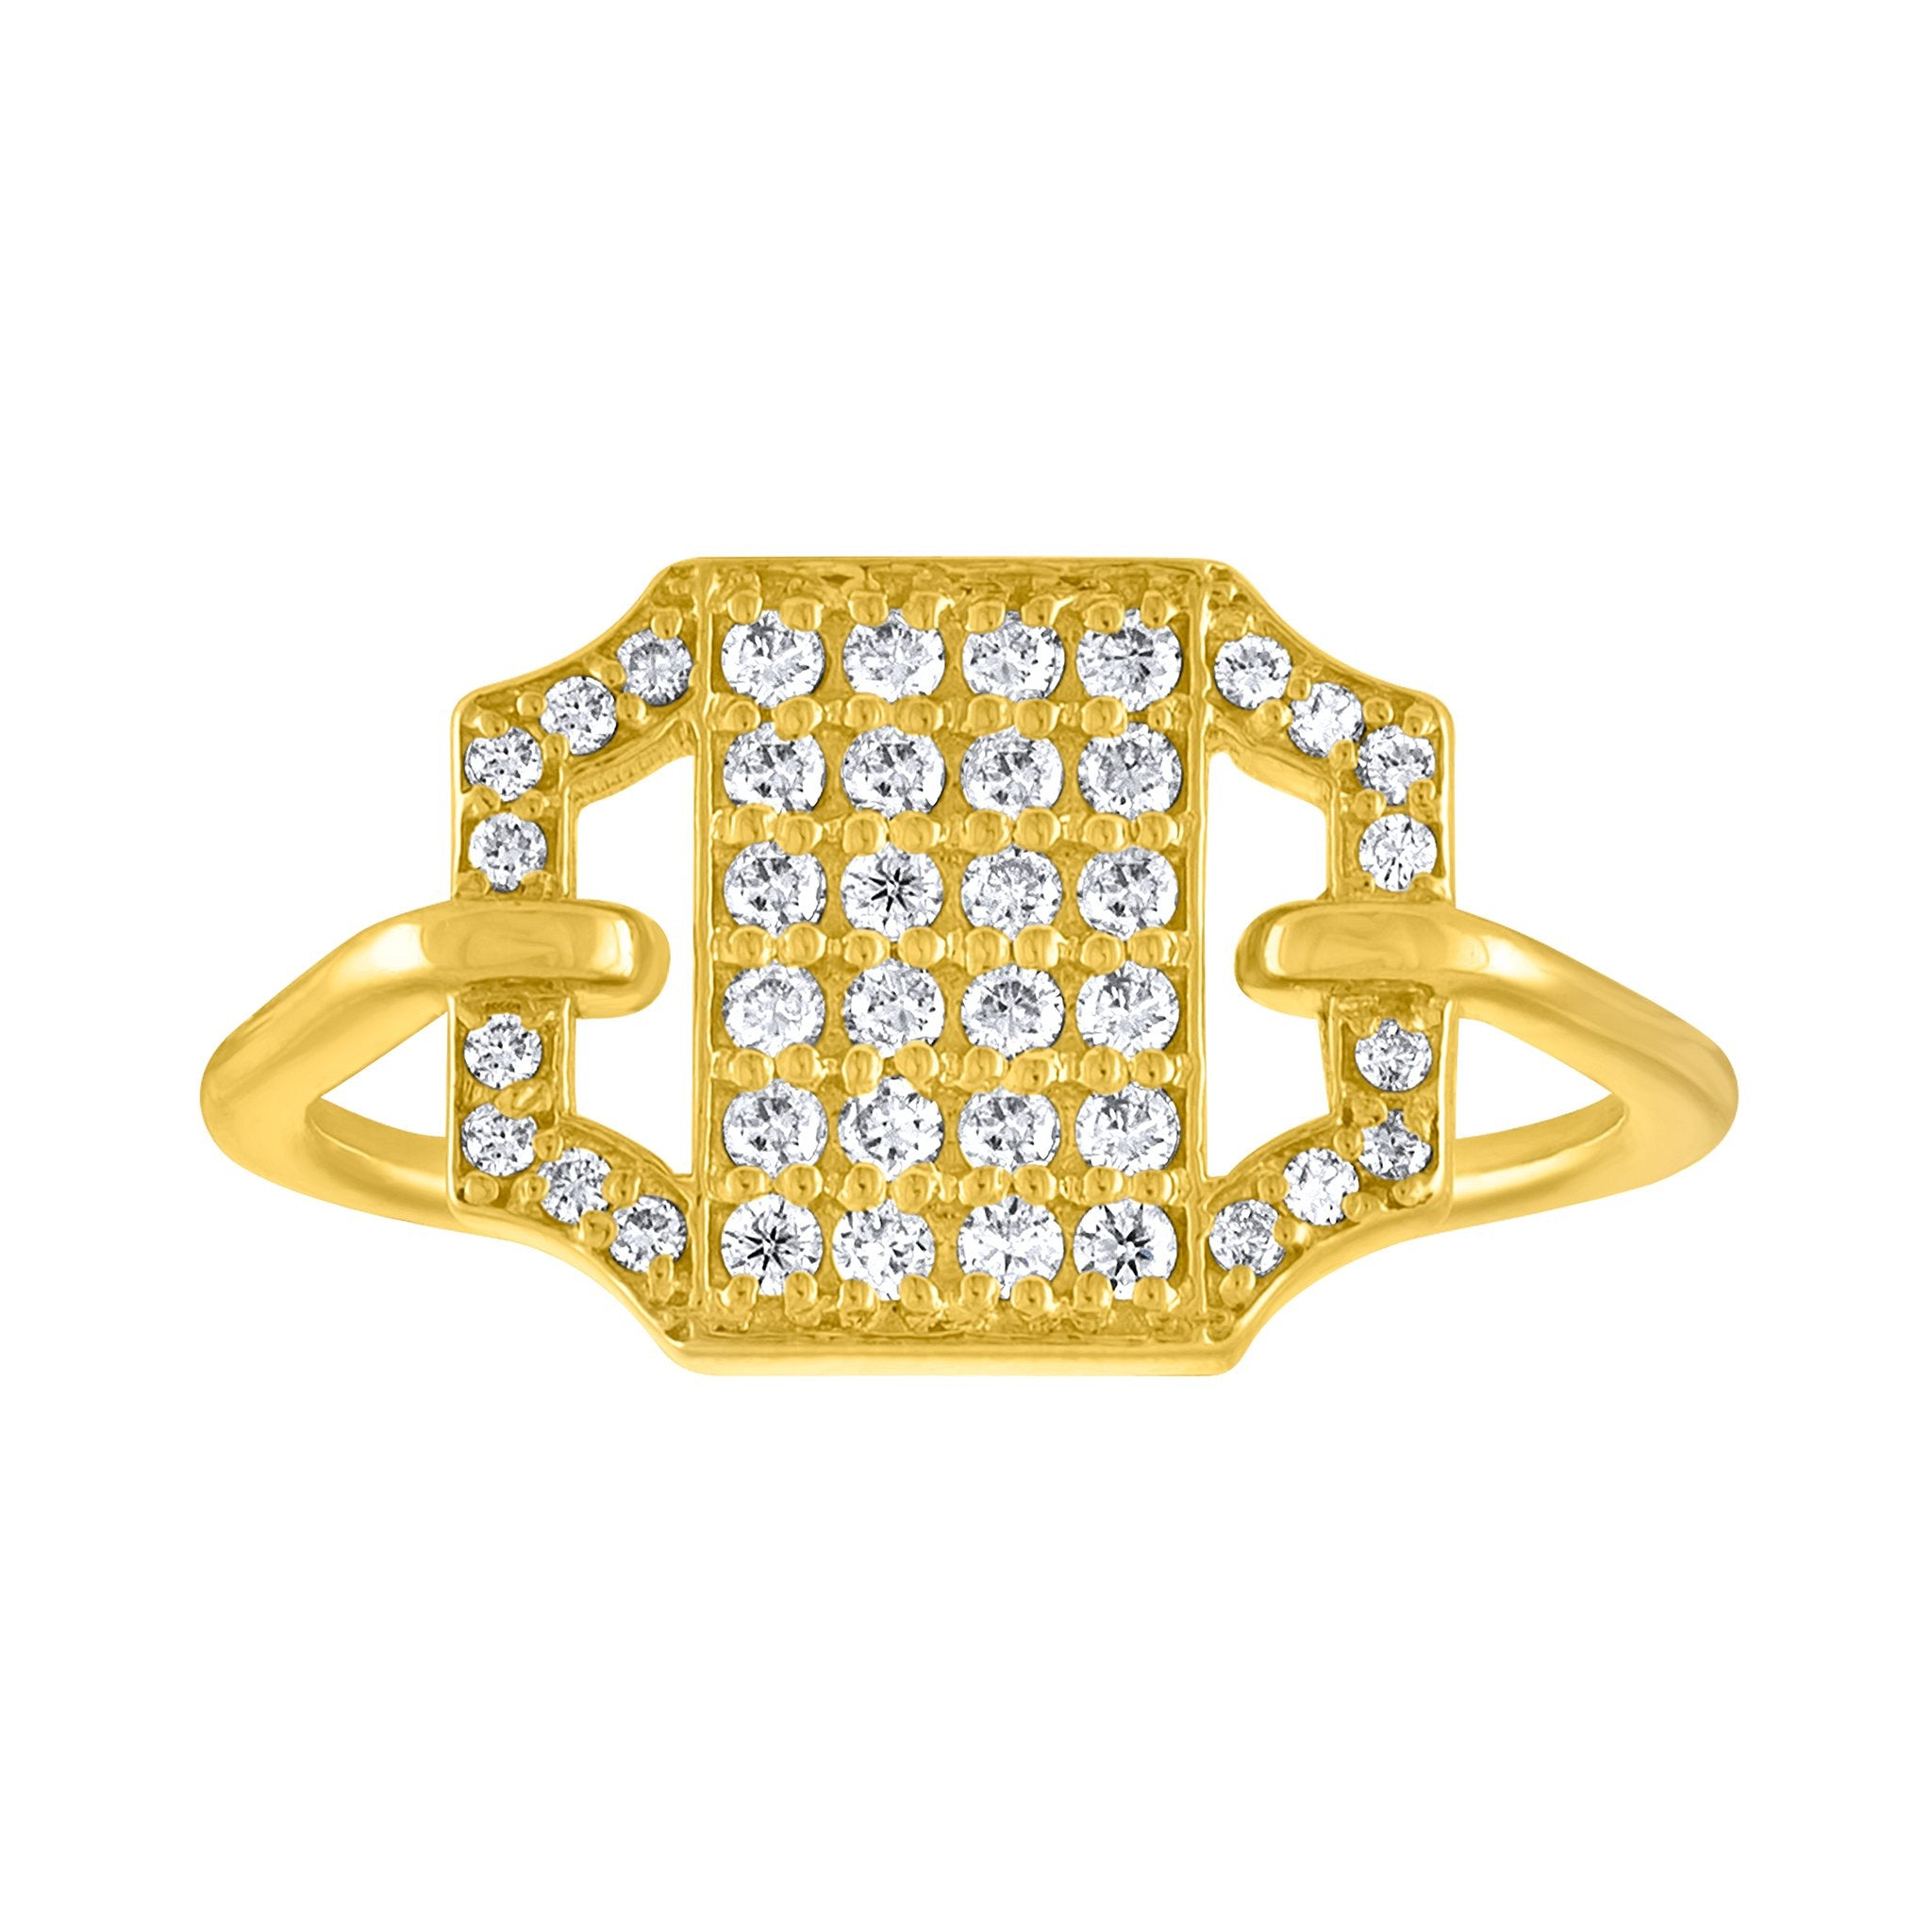 Edge Pave Ring: 18k Gold, Diamonds